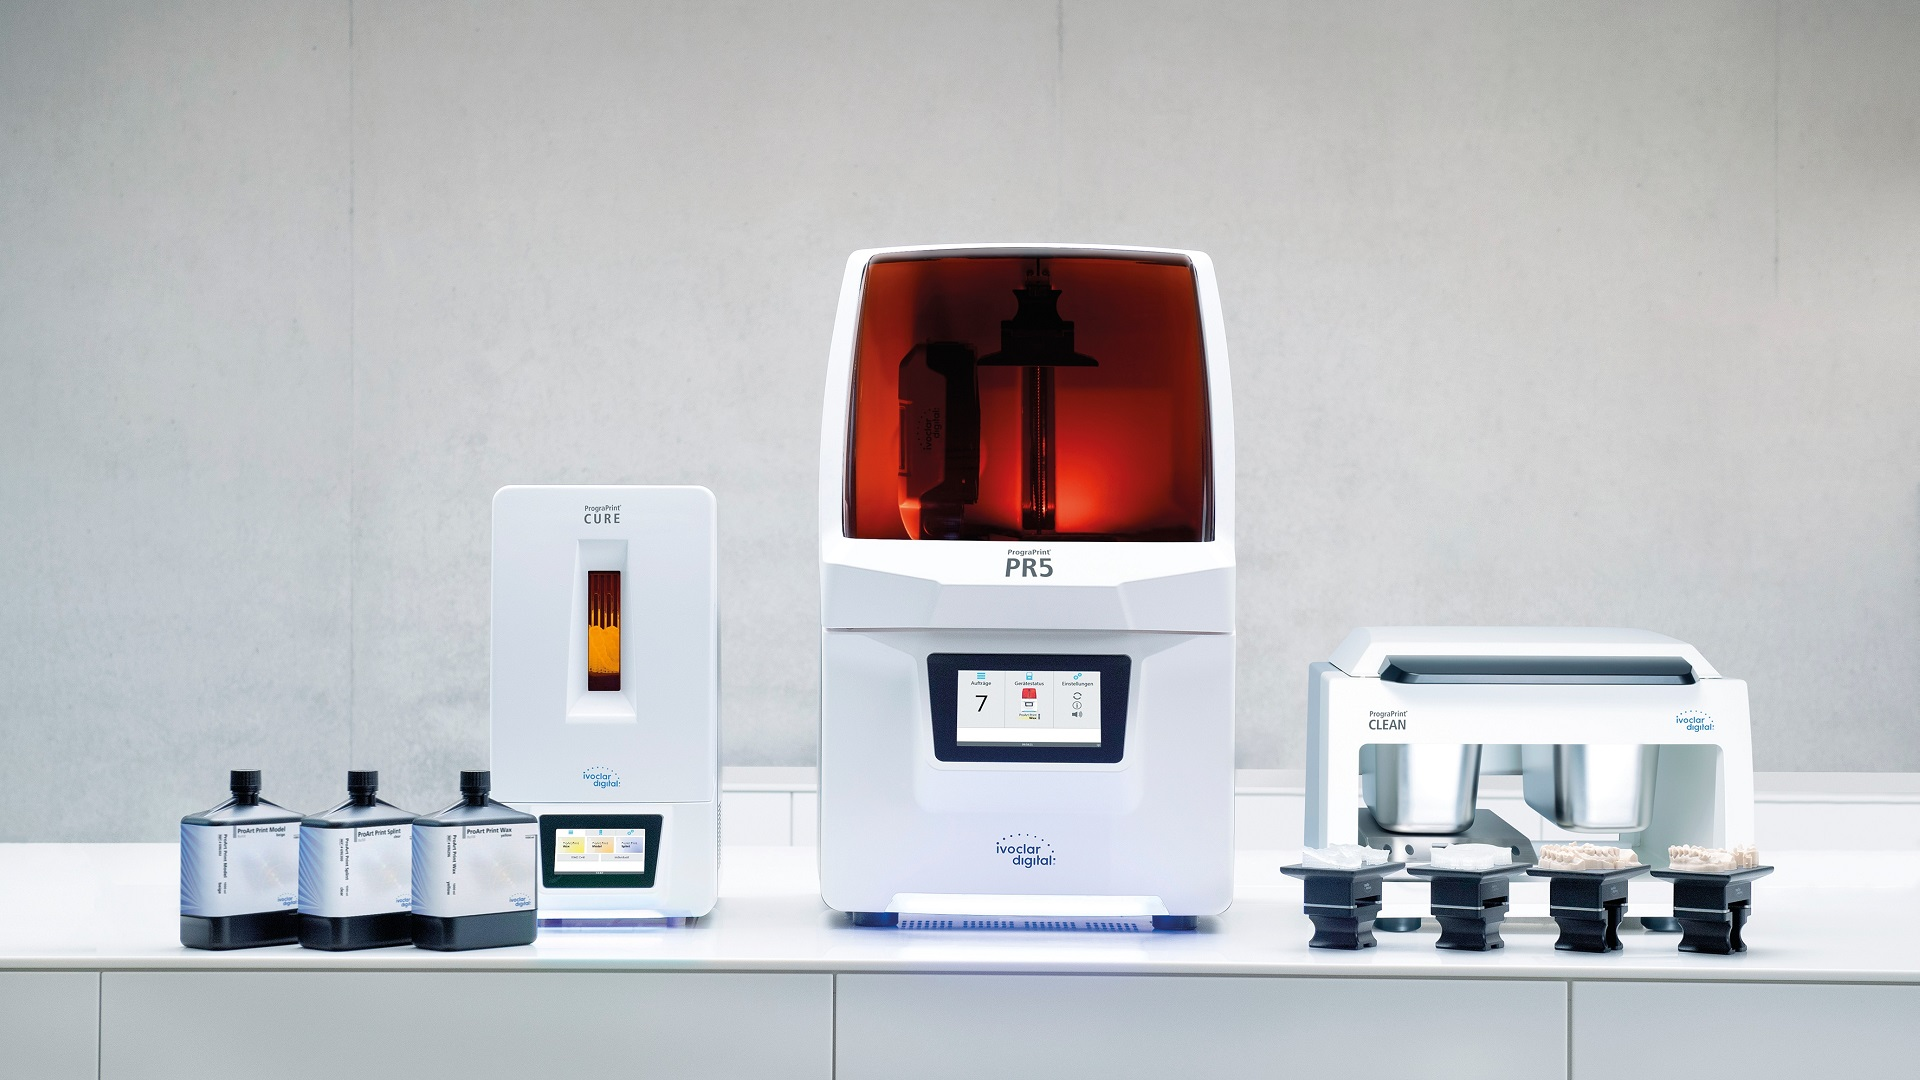 The future of 3D printing for digital laboratories is now